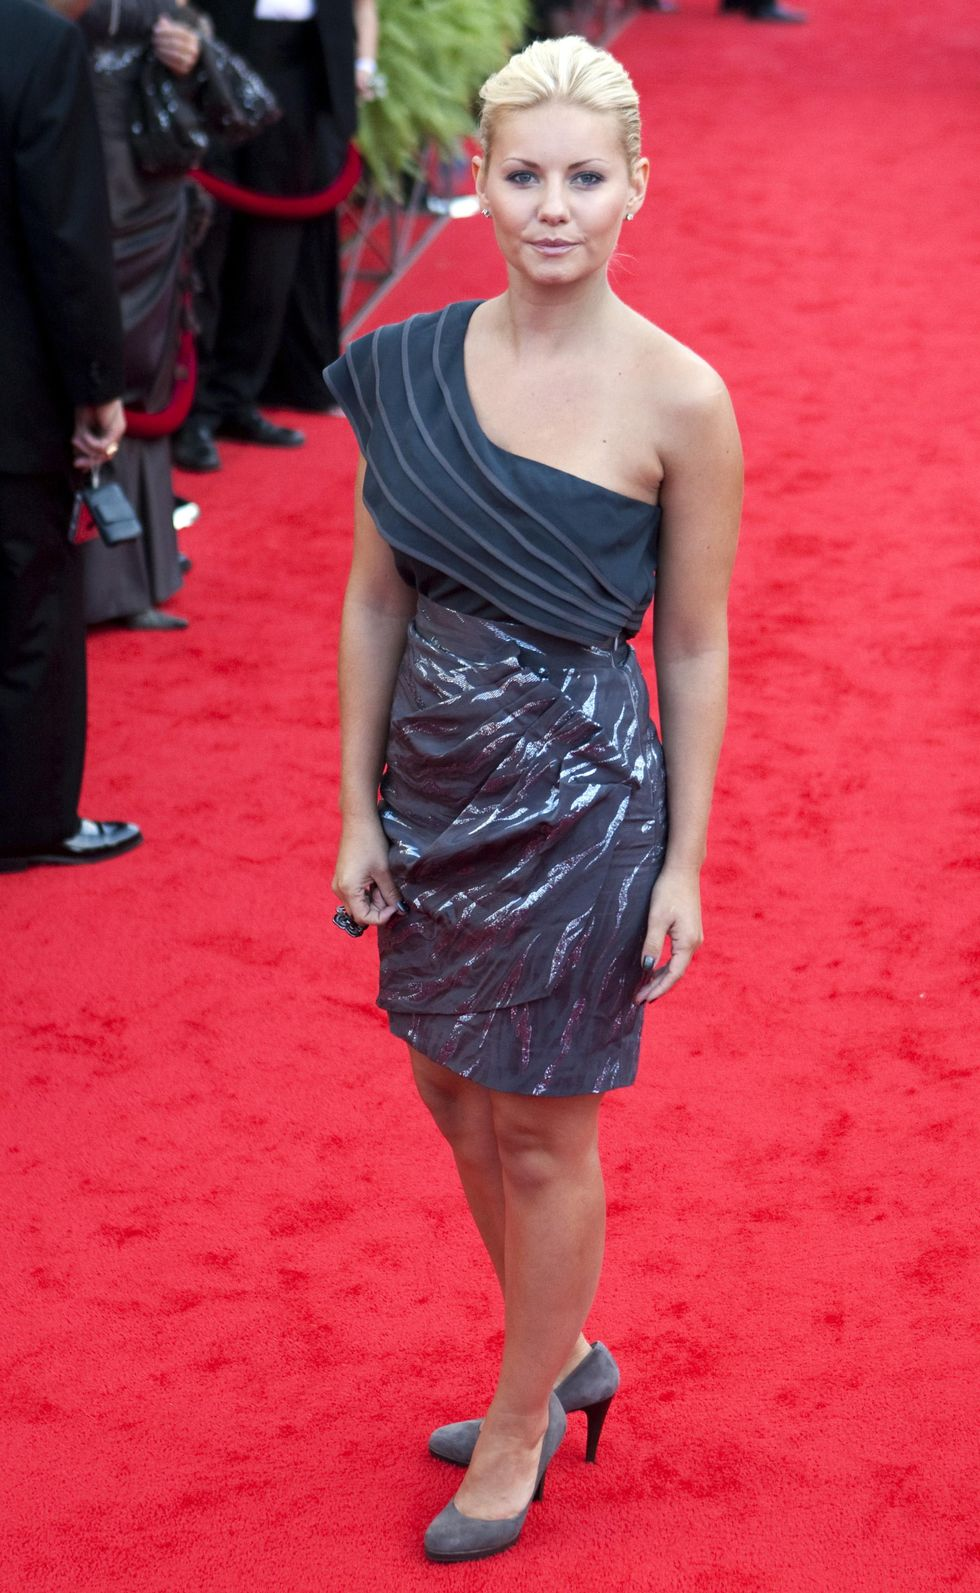 elisha-cuthbert-12th-annual-canadas-walk-of-fame-inductee-ceremony-01